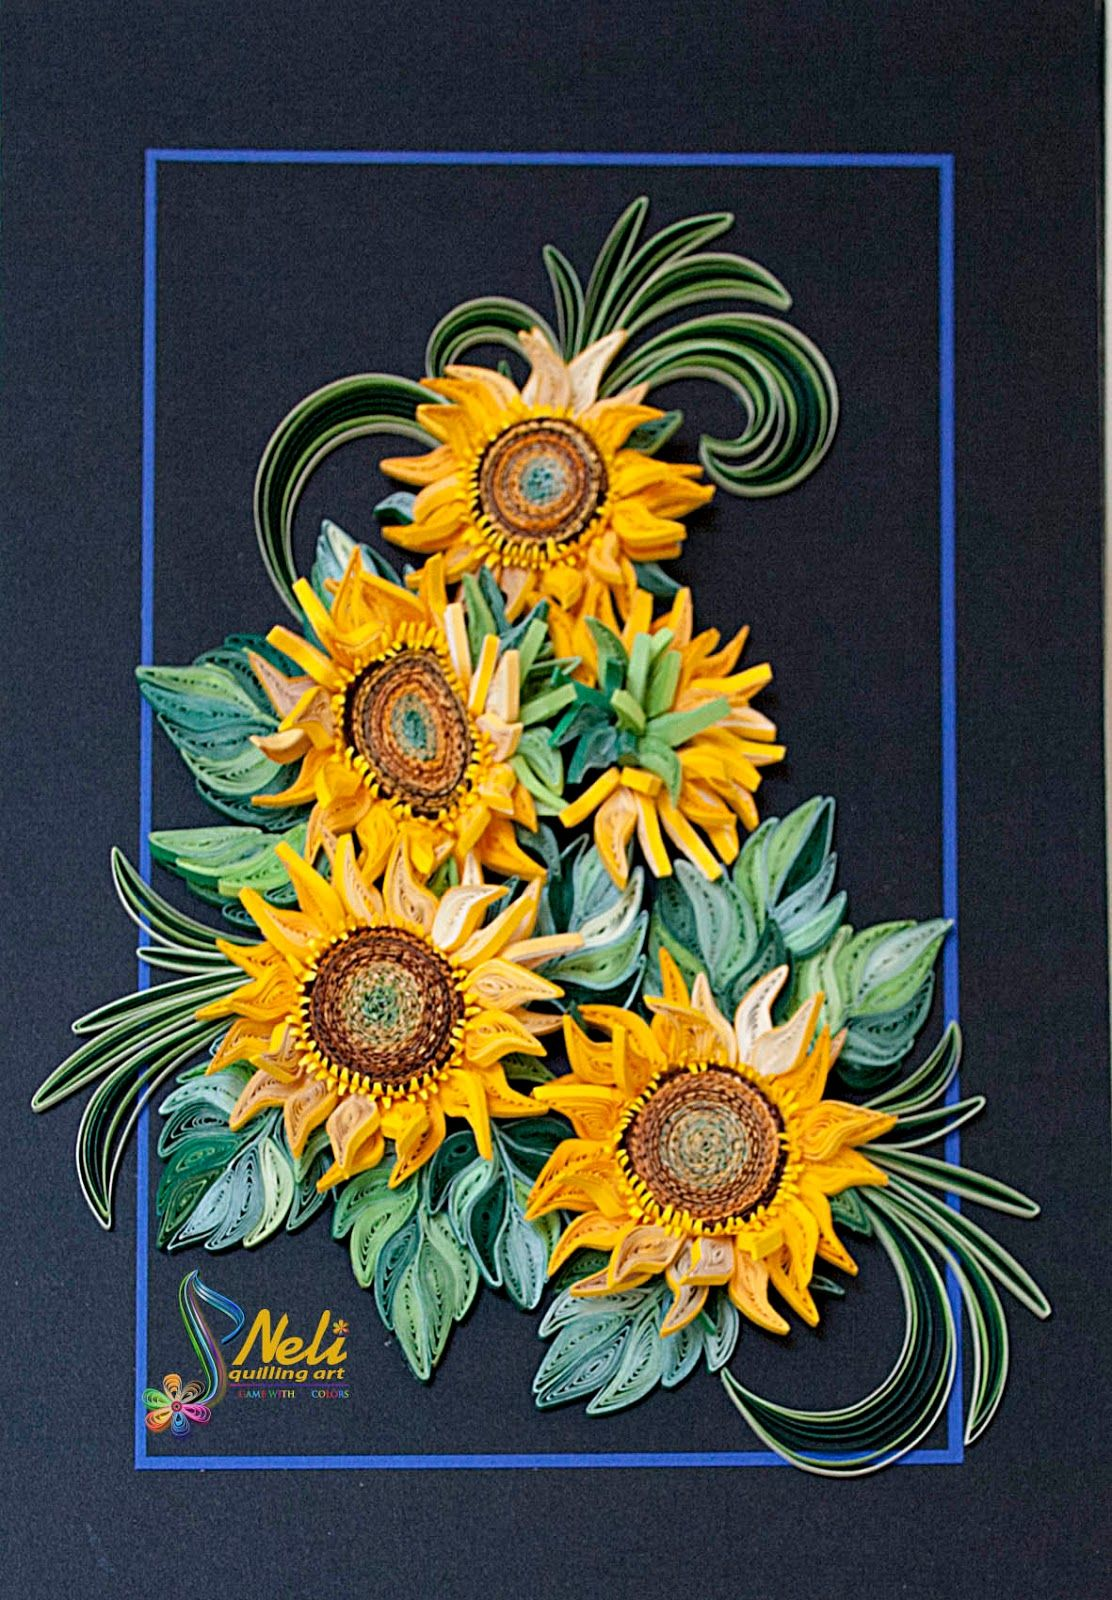 Pin by Cynthia D. on Quilling Neli | Pinterest | Quilling ...